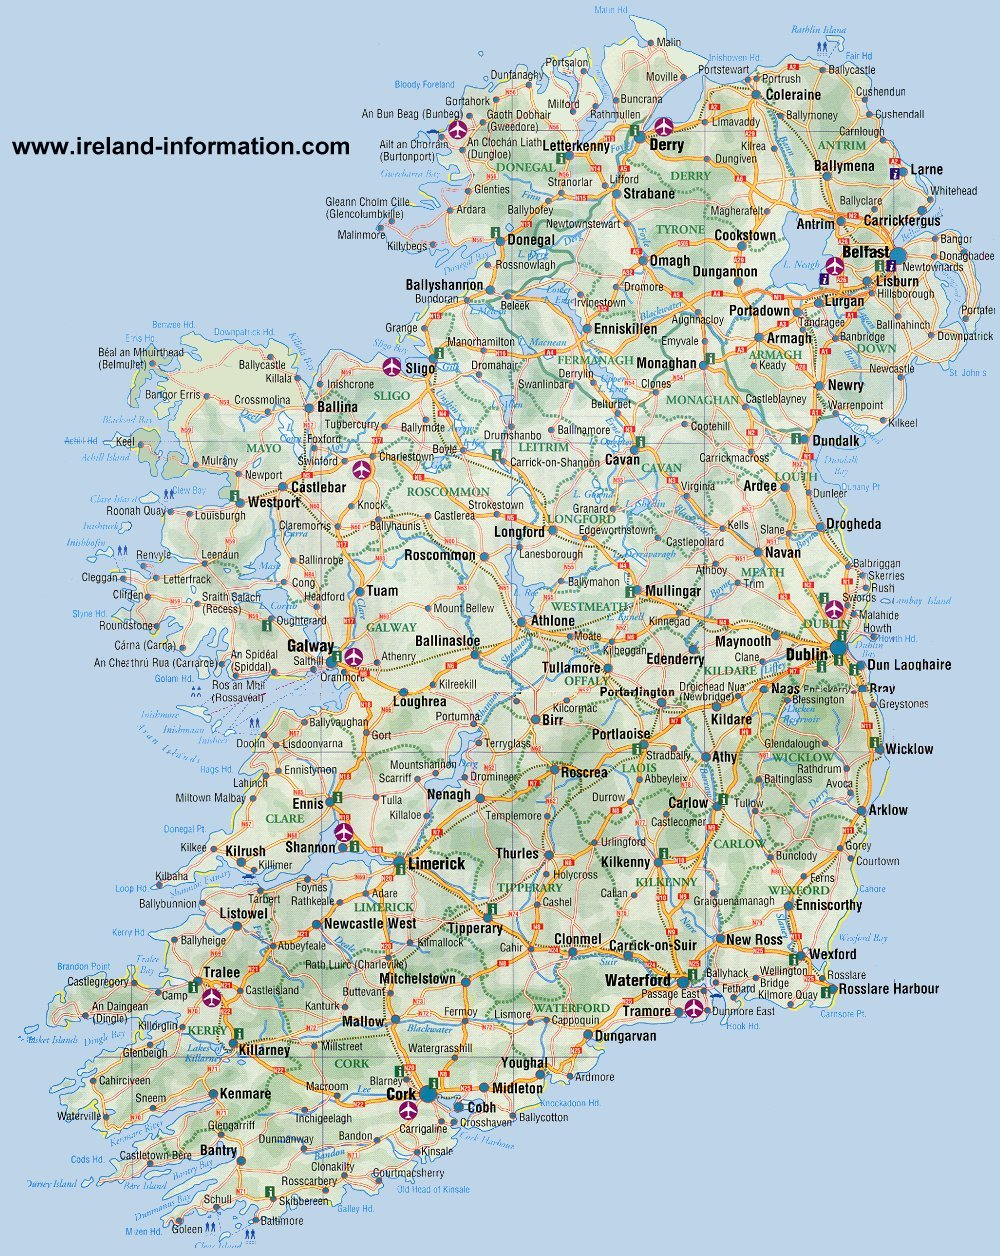 Ireland Road Map Ireland Maps Free, and Dublin, Cork, Galway Ireland Road Map